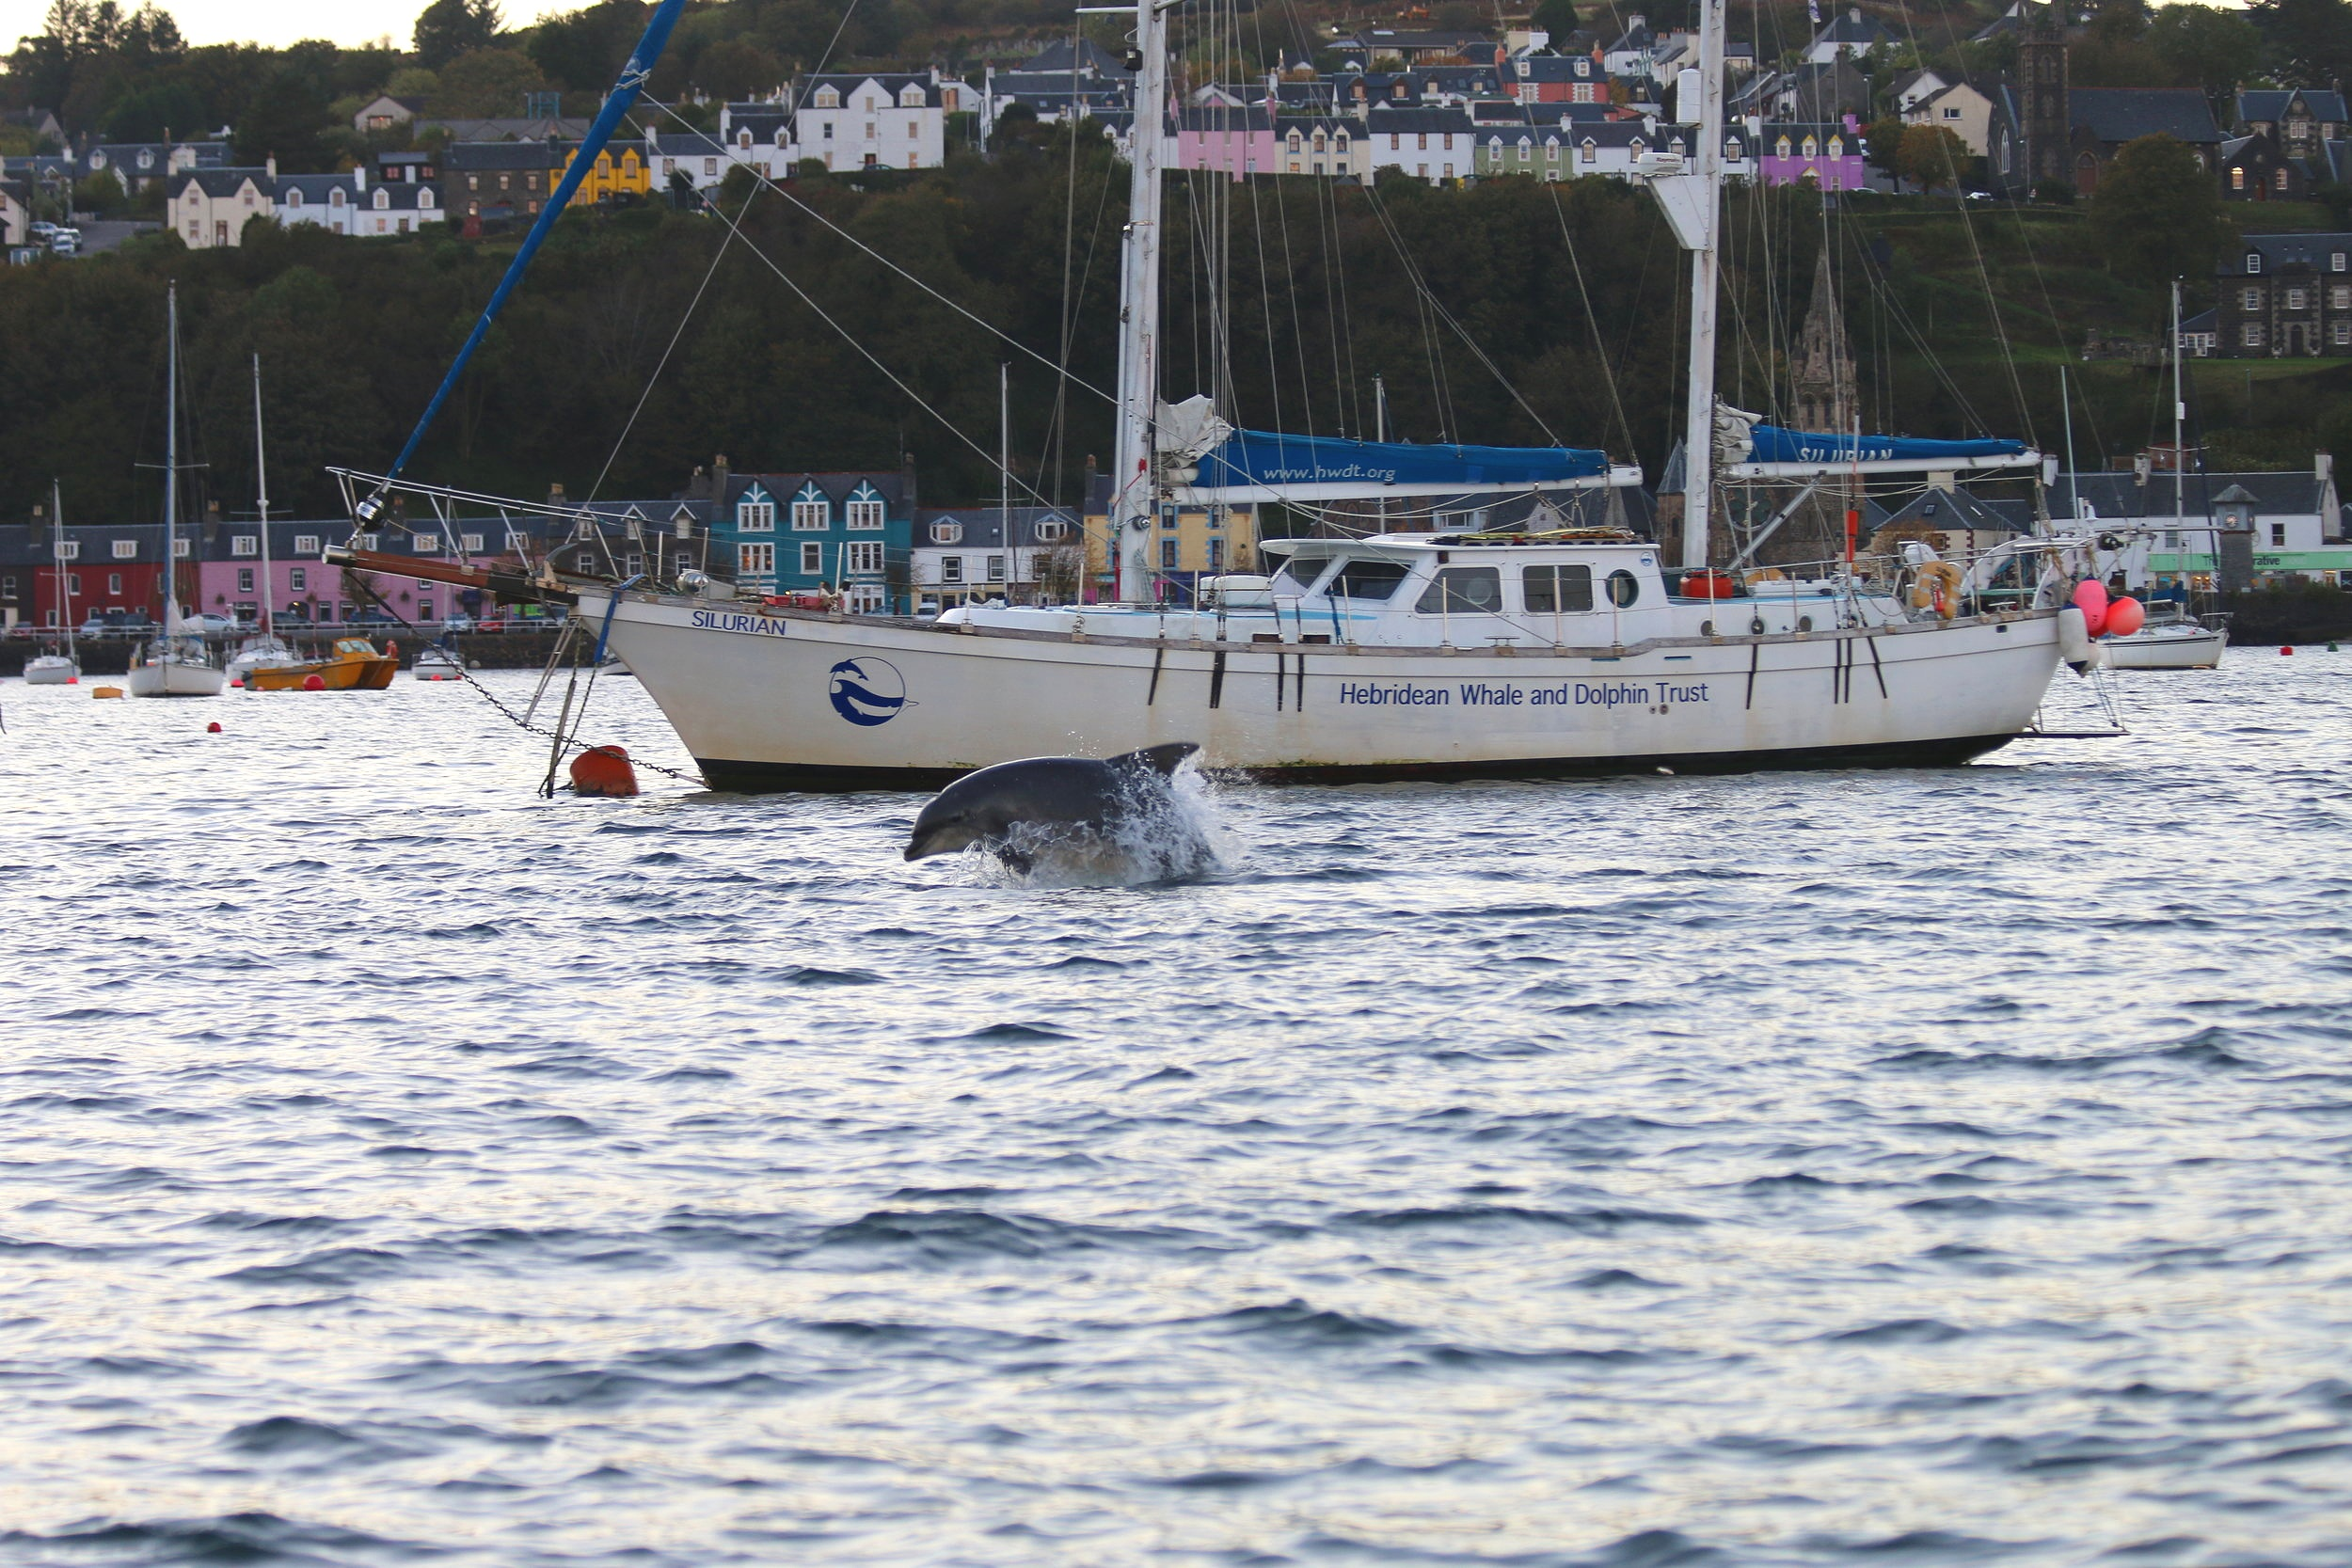 A bottlenose dolphin breaks the surface in front of our research yacht,  Silurian